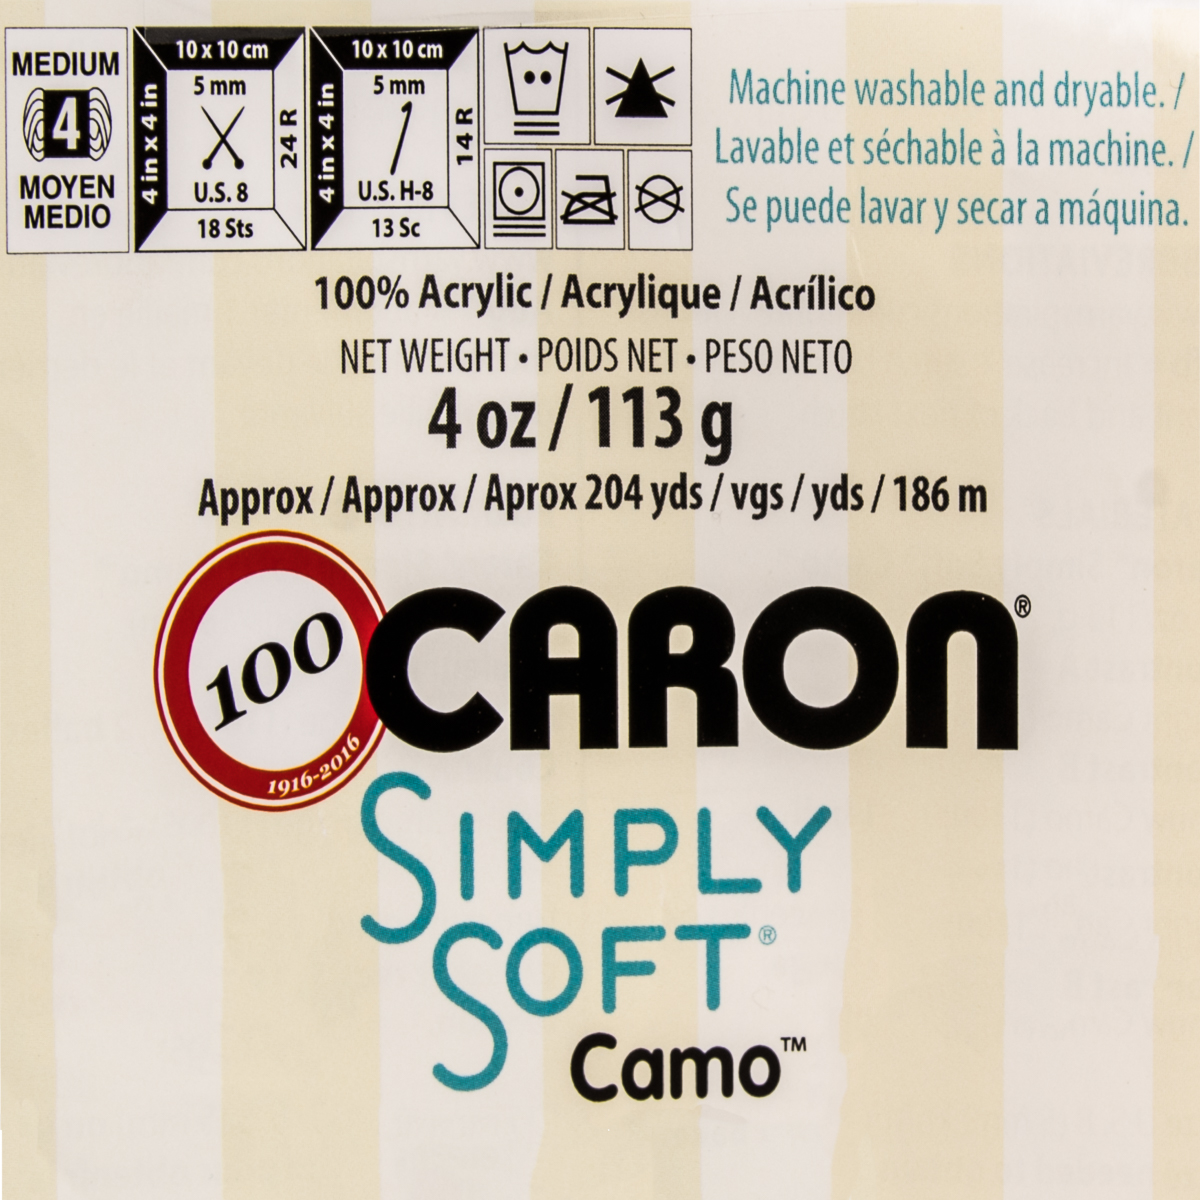 3pk-Caron-Simply-Soft-Camo-100-Acrylic-Yarn-Medium-4-Knit-Crochet-Skeins-Soft thumbnail 30